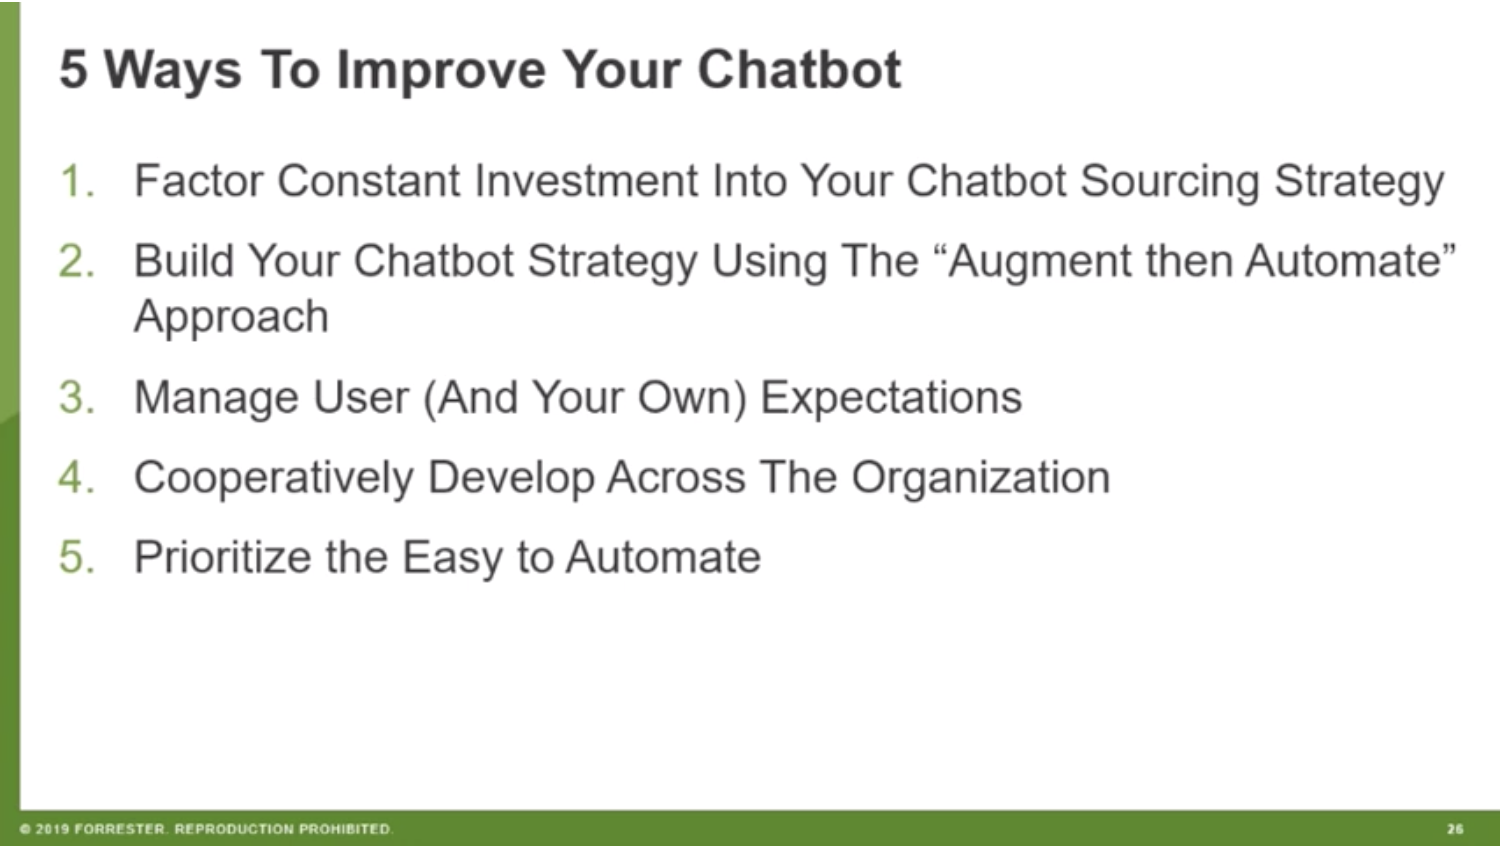 improve your chatbot